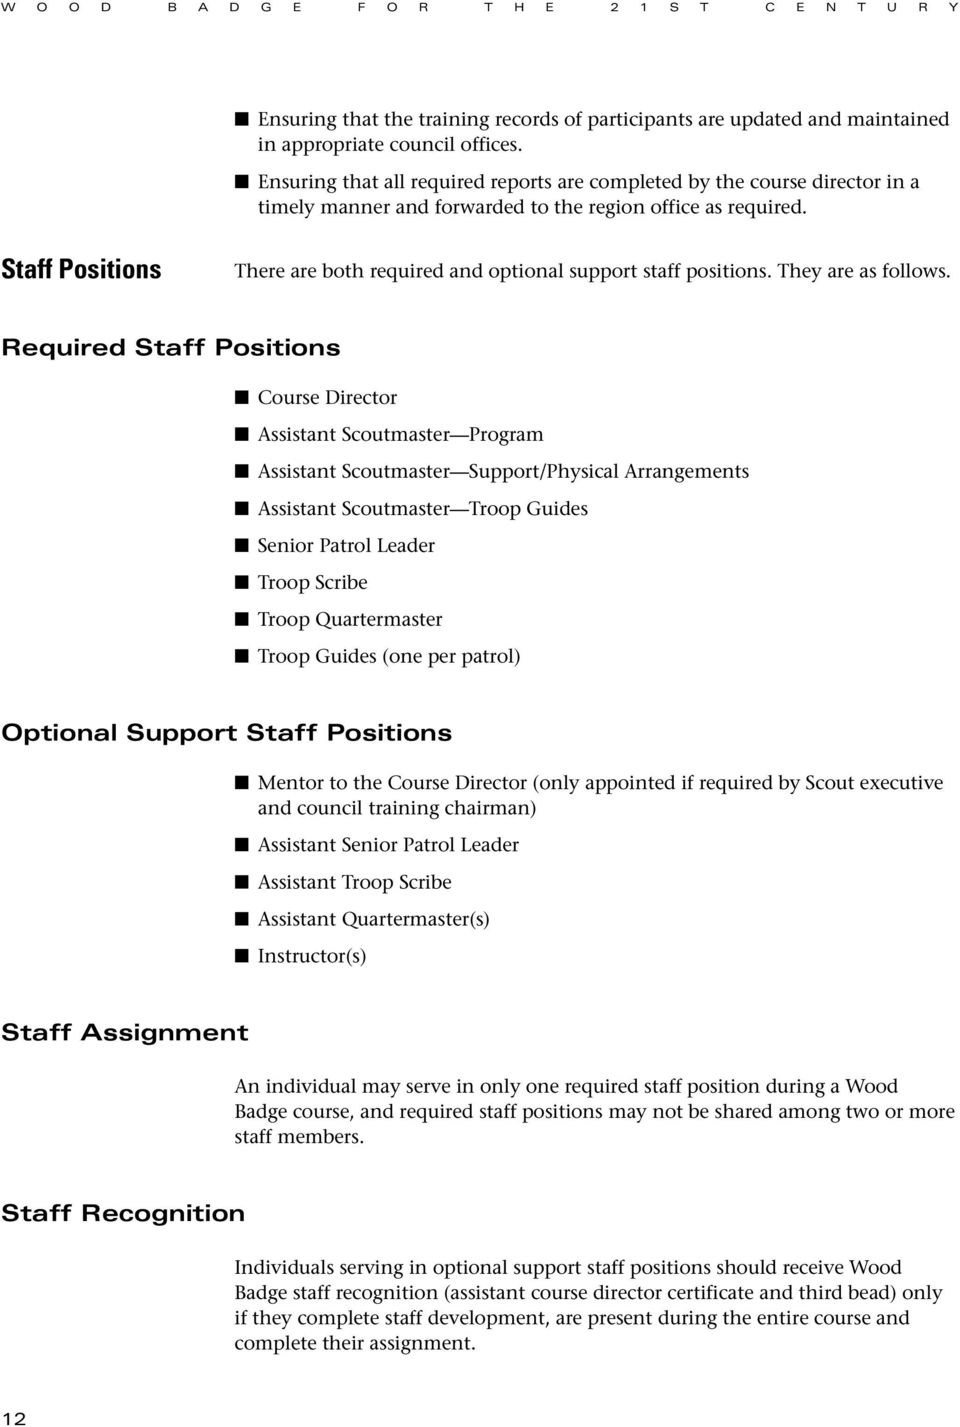 Staff Positions There are both required and optional support staff positions. They are as follows.